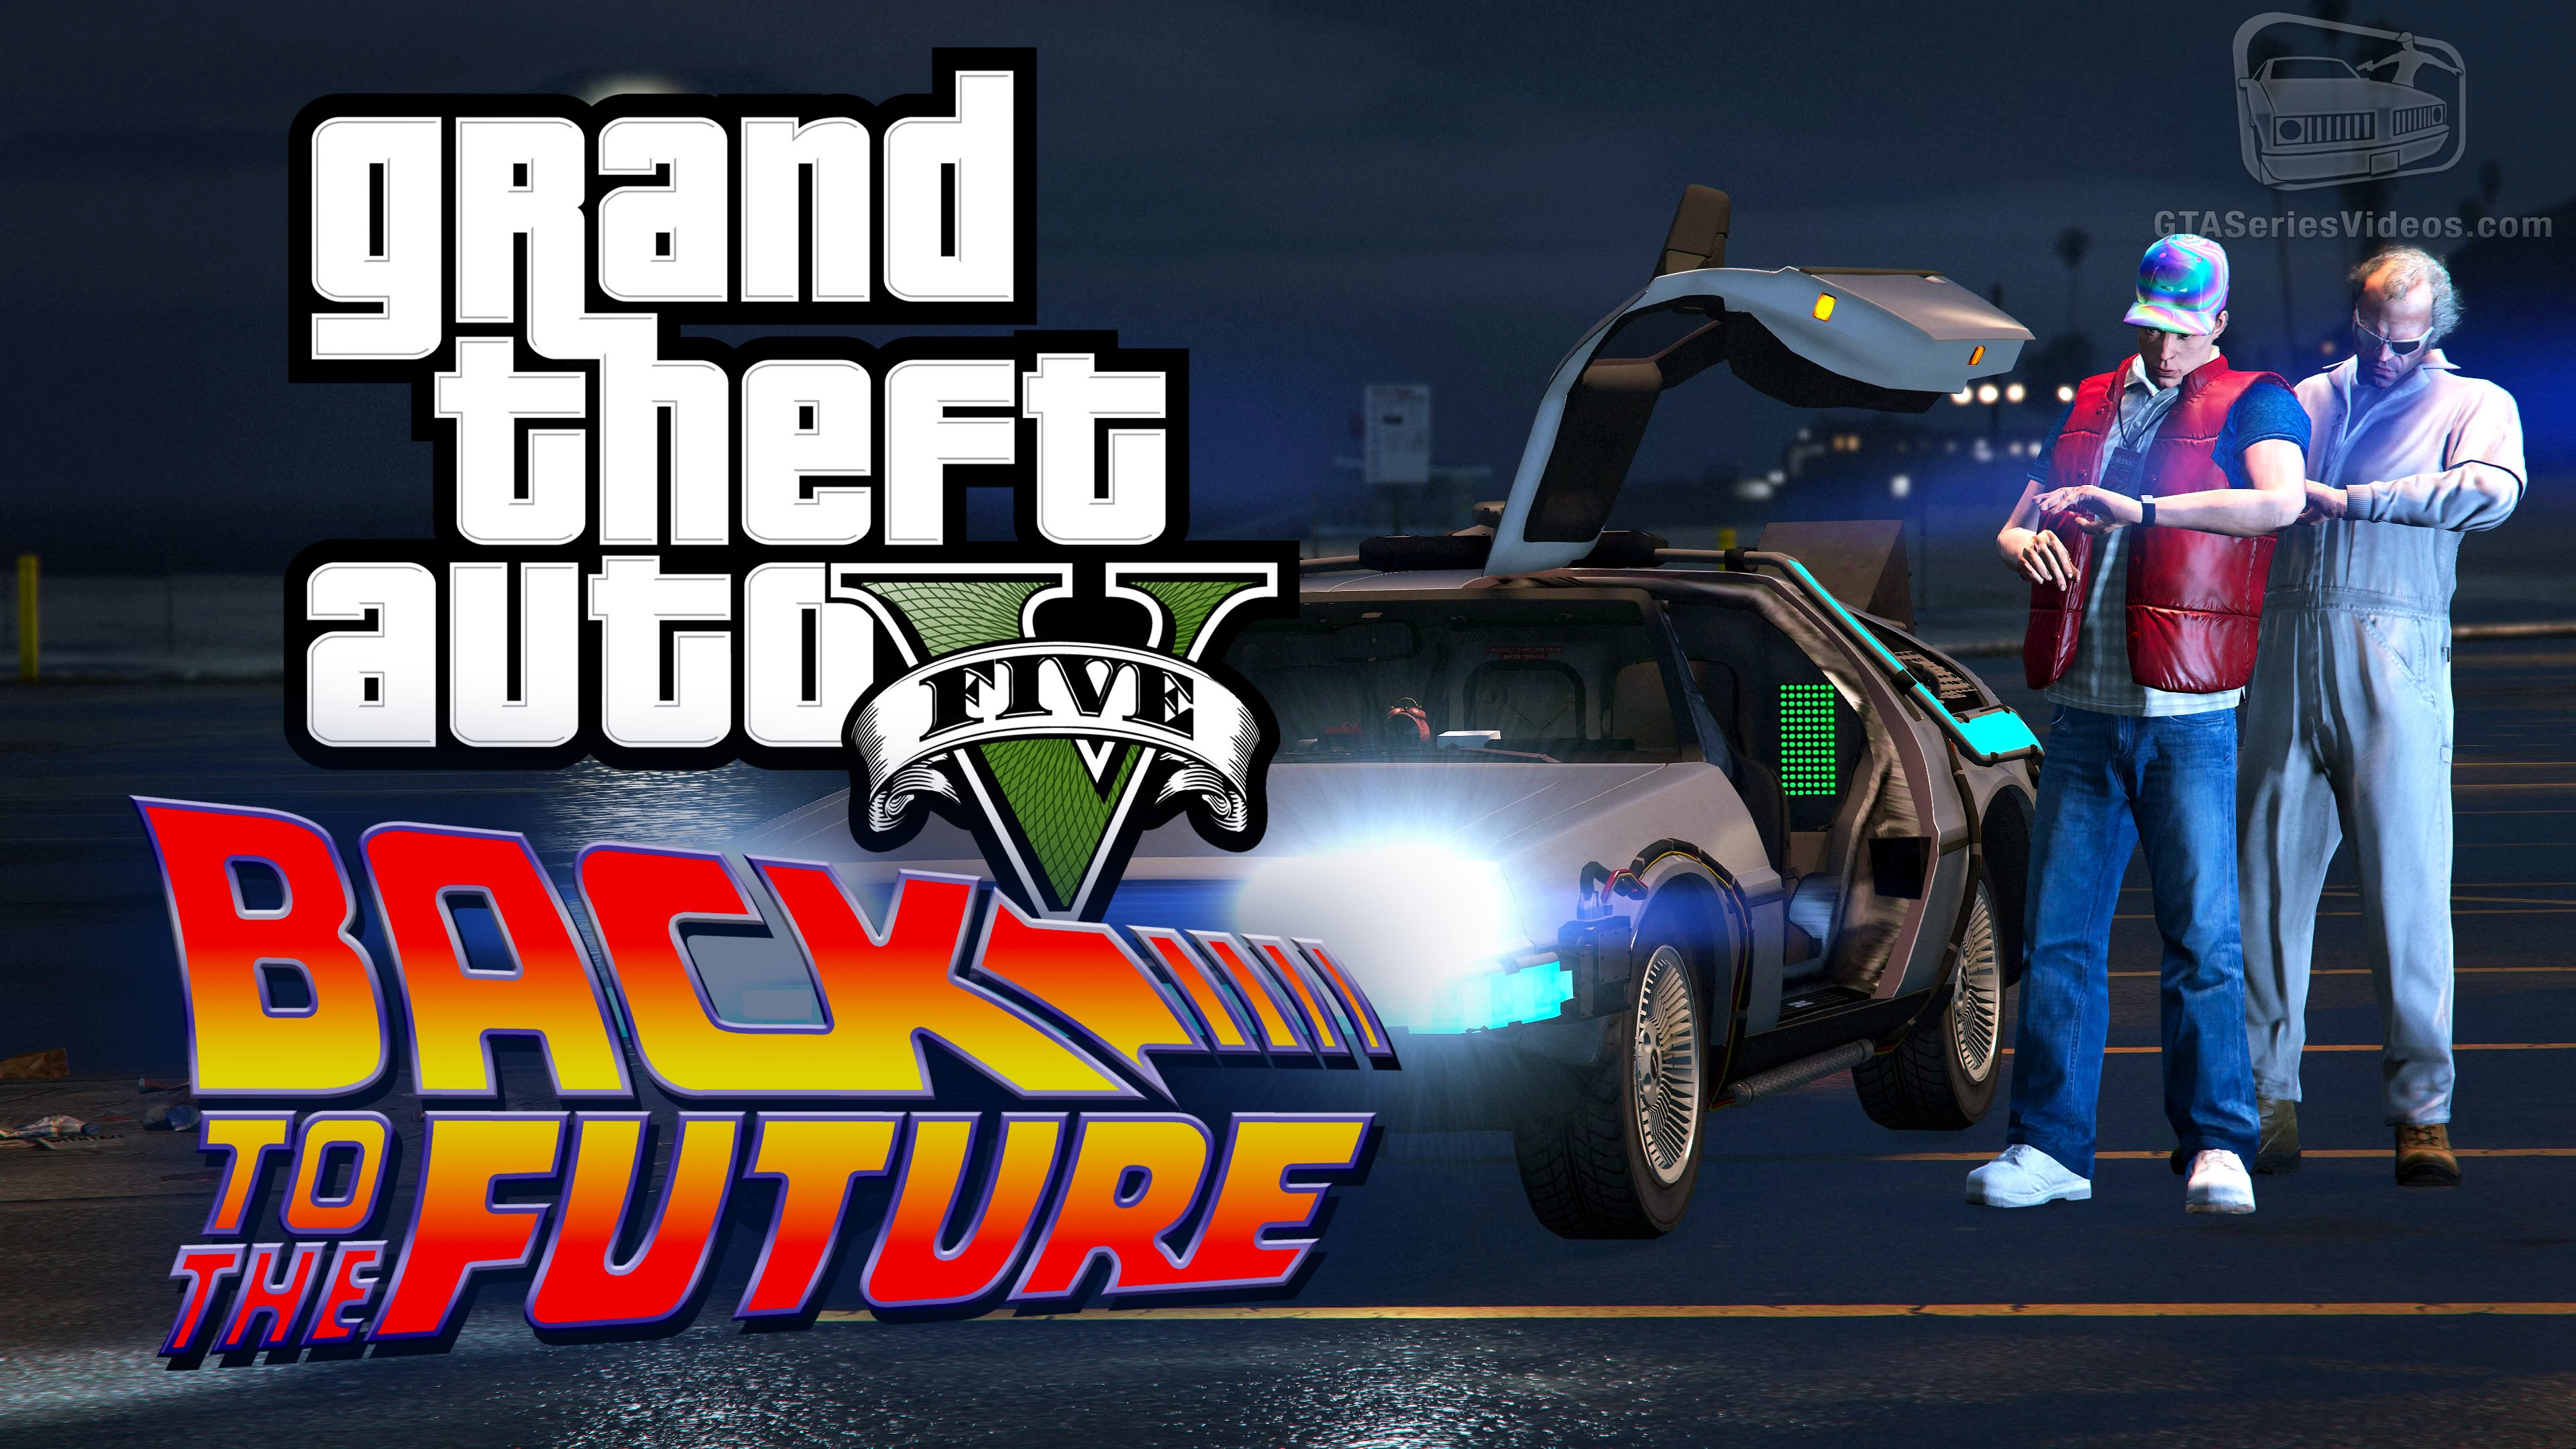 GTA V Back to The Future mod is AWESOME